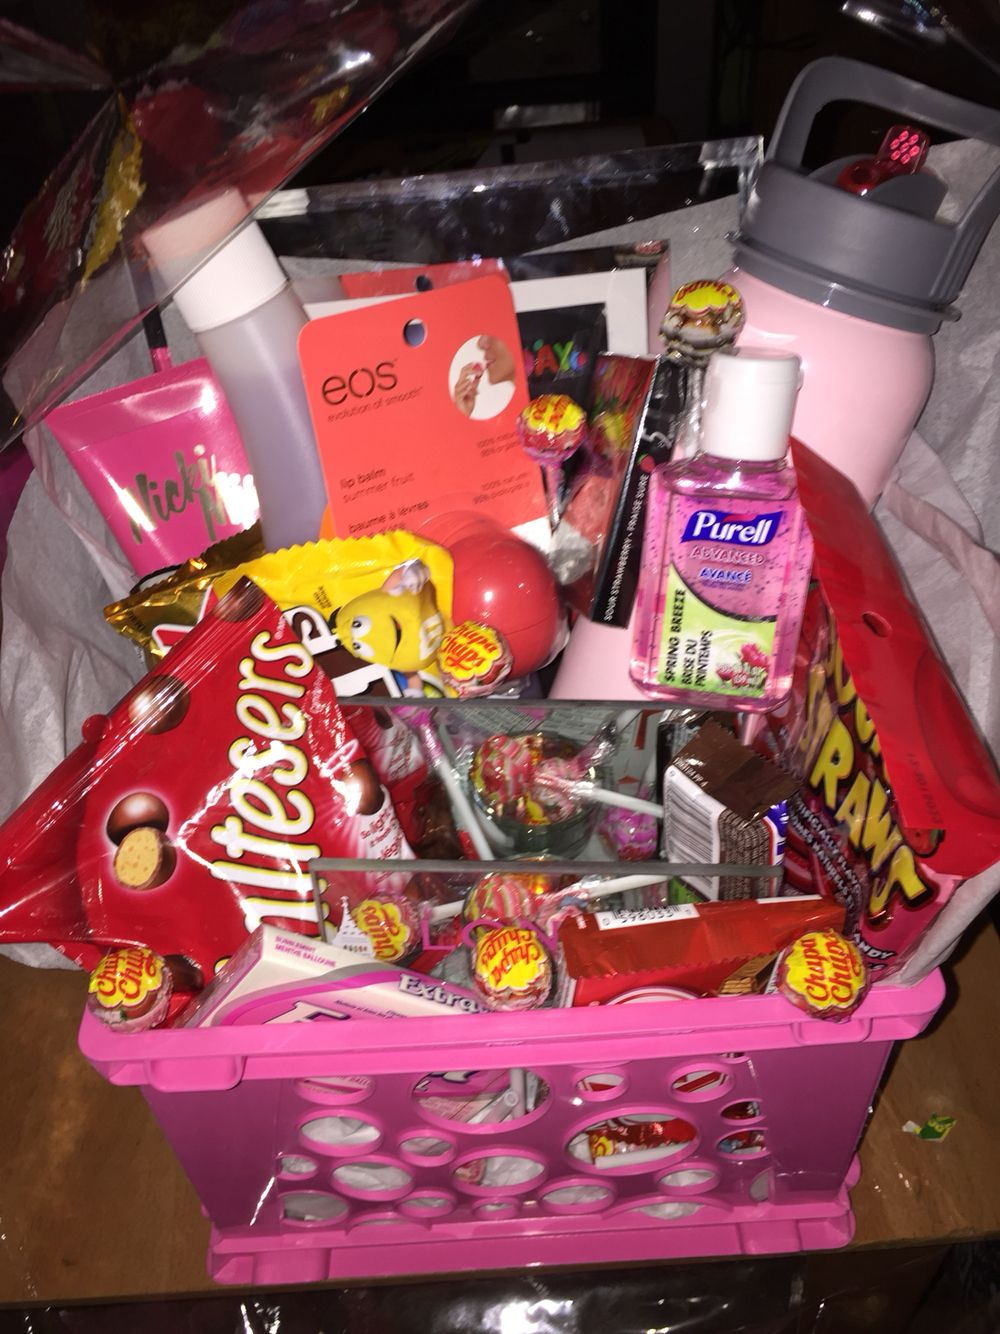 Made A Gift Basket For My Best Friends Birthday With Little Things She Likes